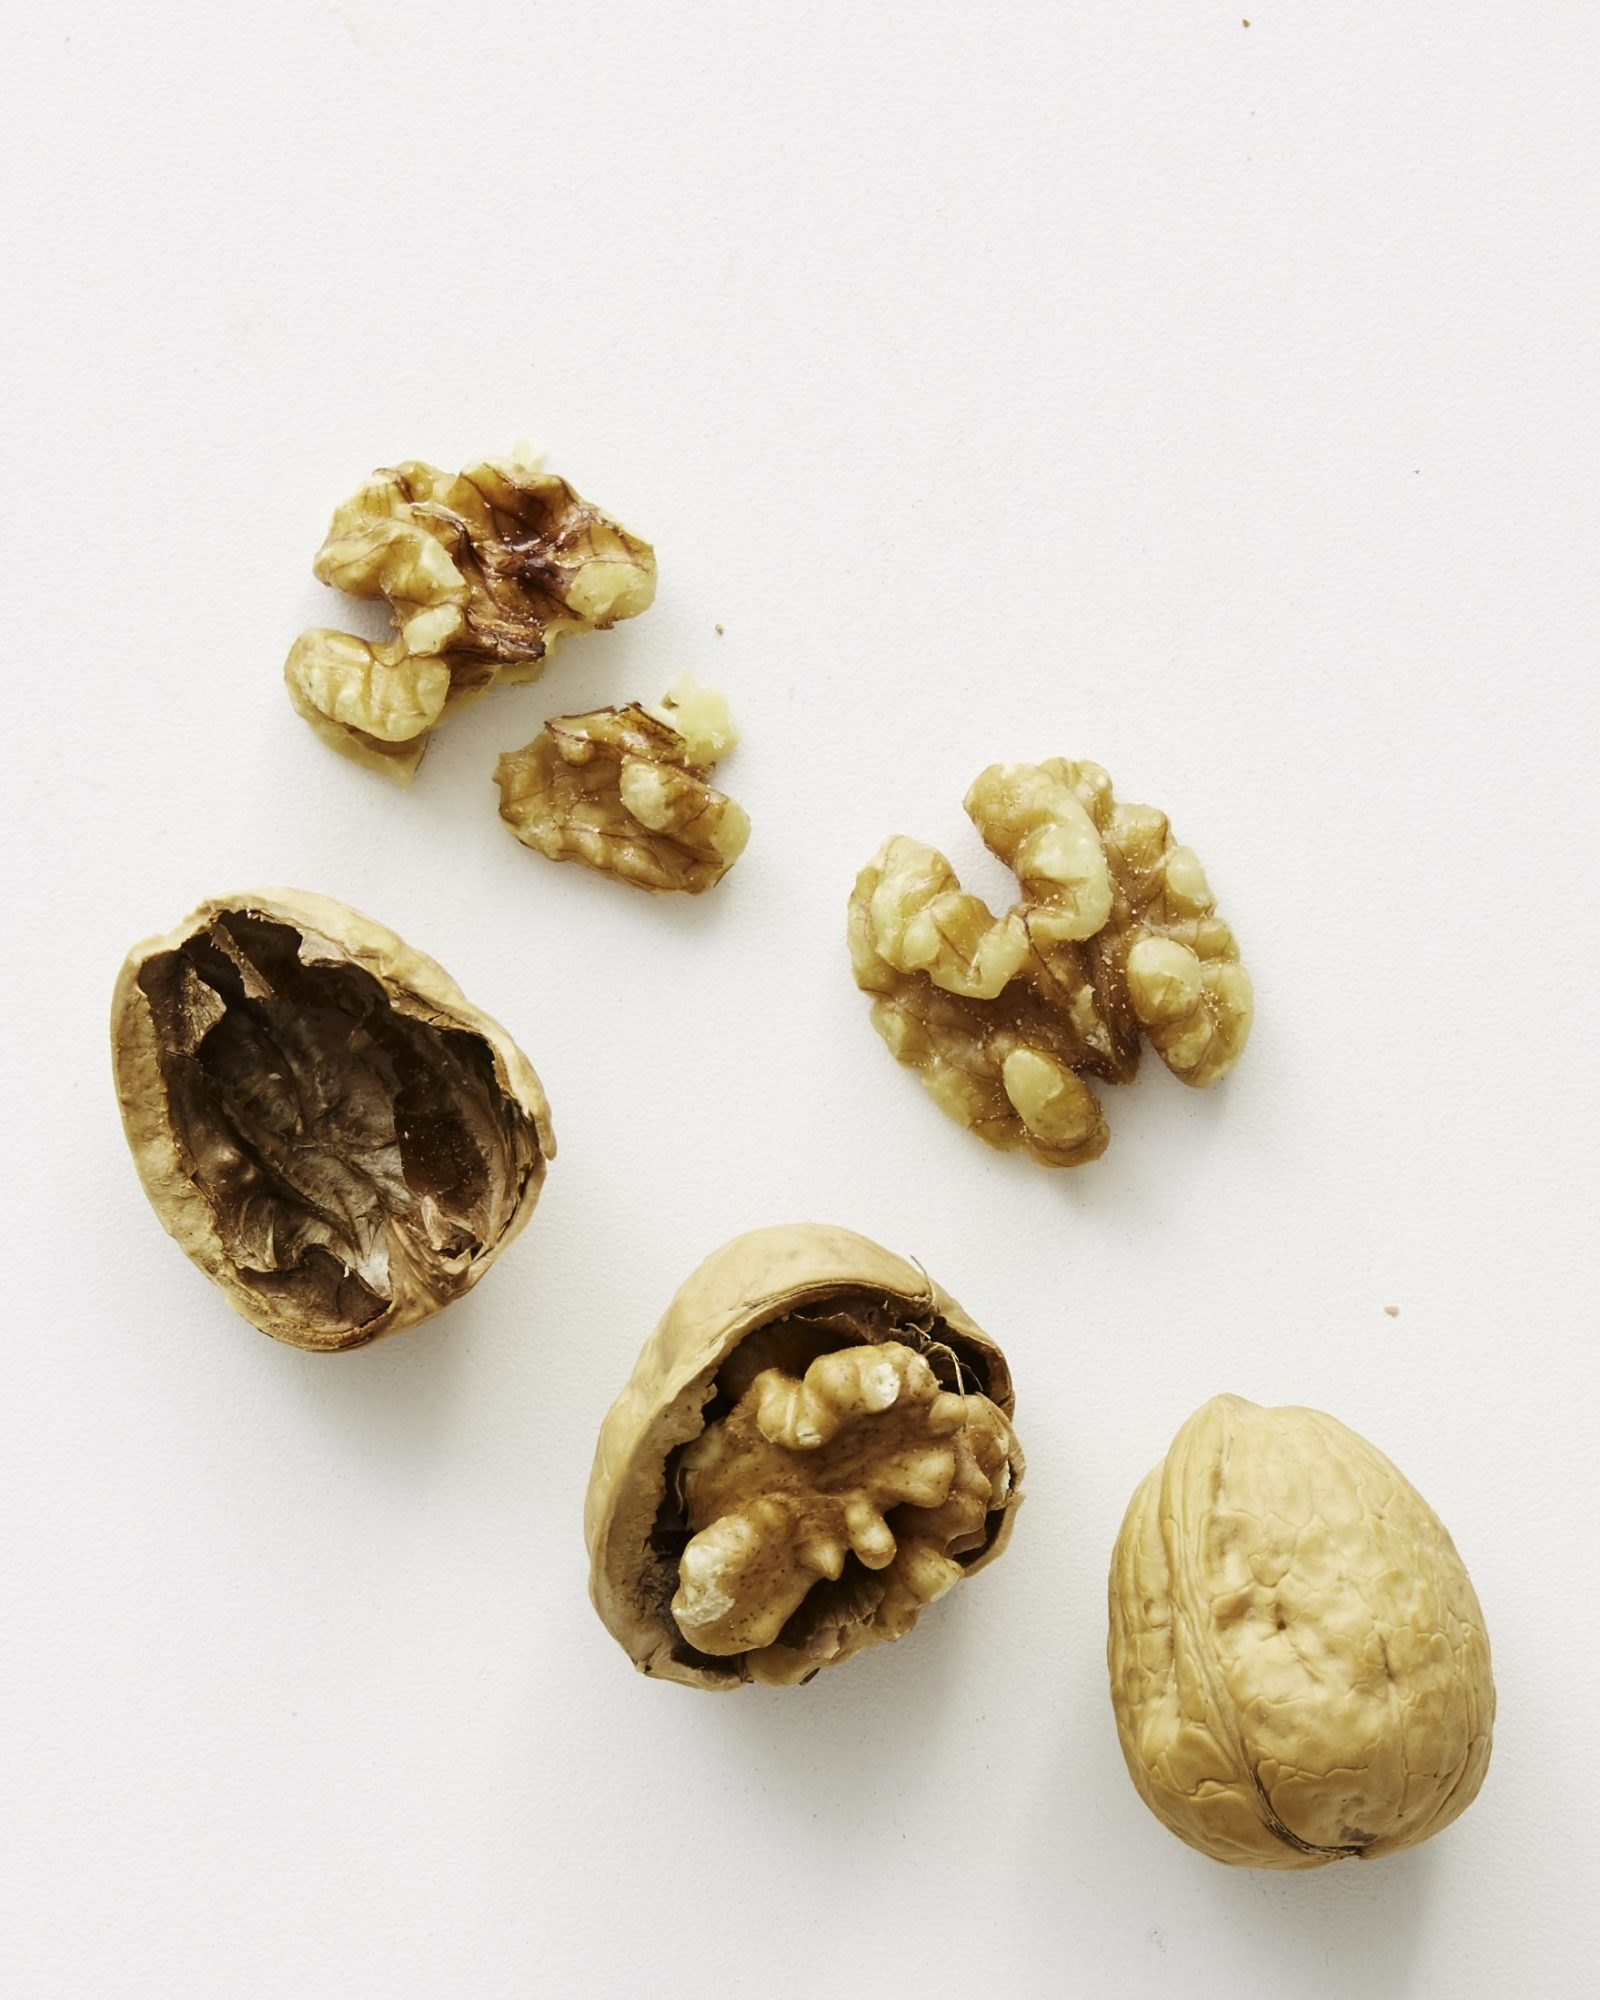 Studies show that eating just two ounces of nuts—whether it be almonds, cashews, peanuts, or walnuts—a day can slightly lower levels of bad cholesterol, according to Harvard Medical School. Nuts also contain omega-3s and unsaturated fat, which can boost your heart health.